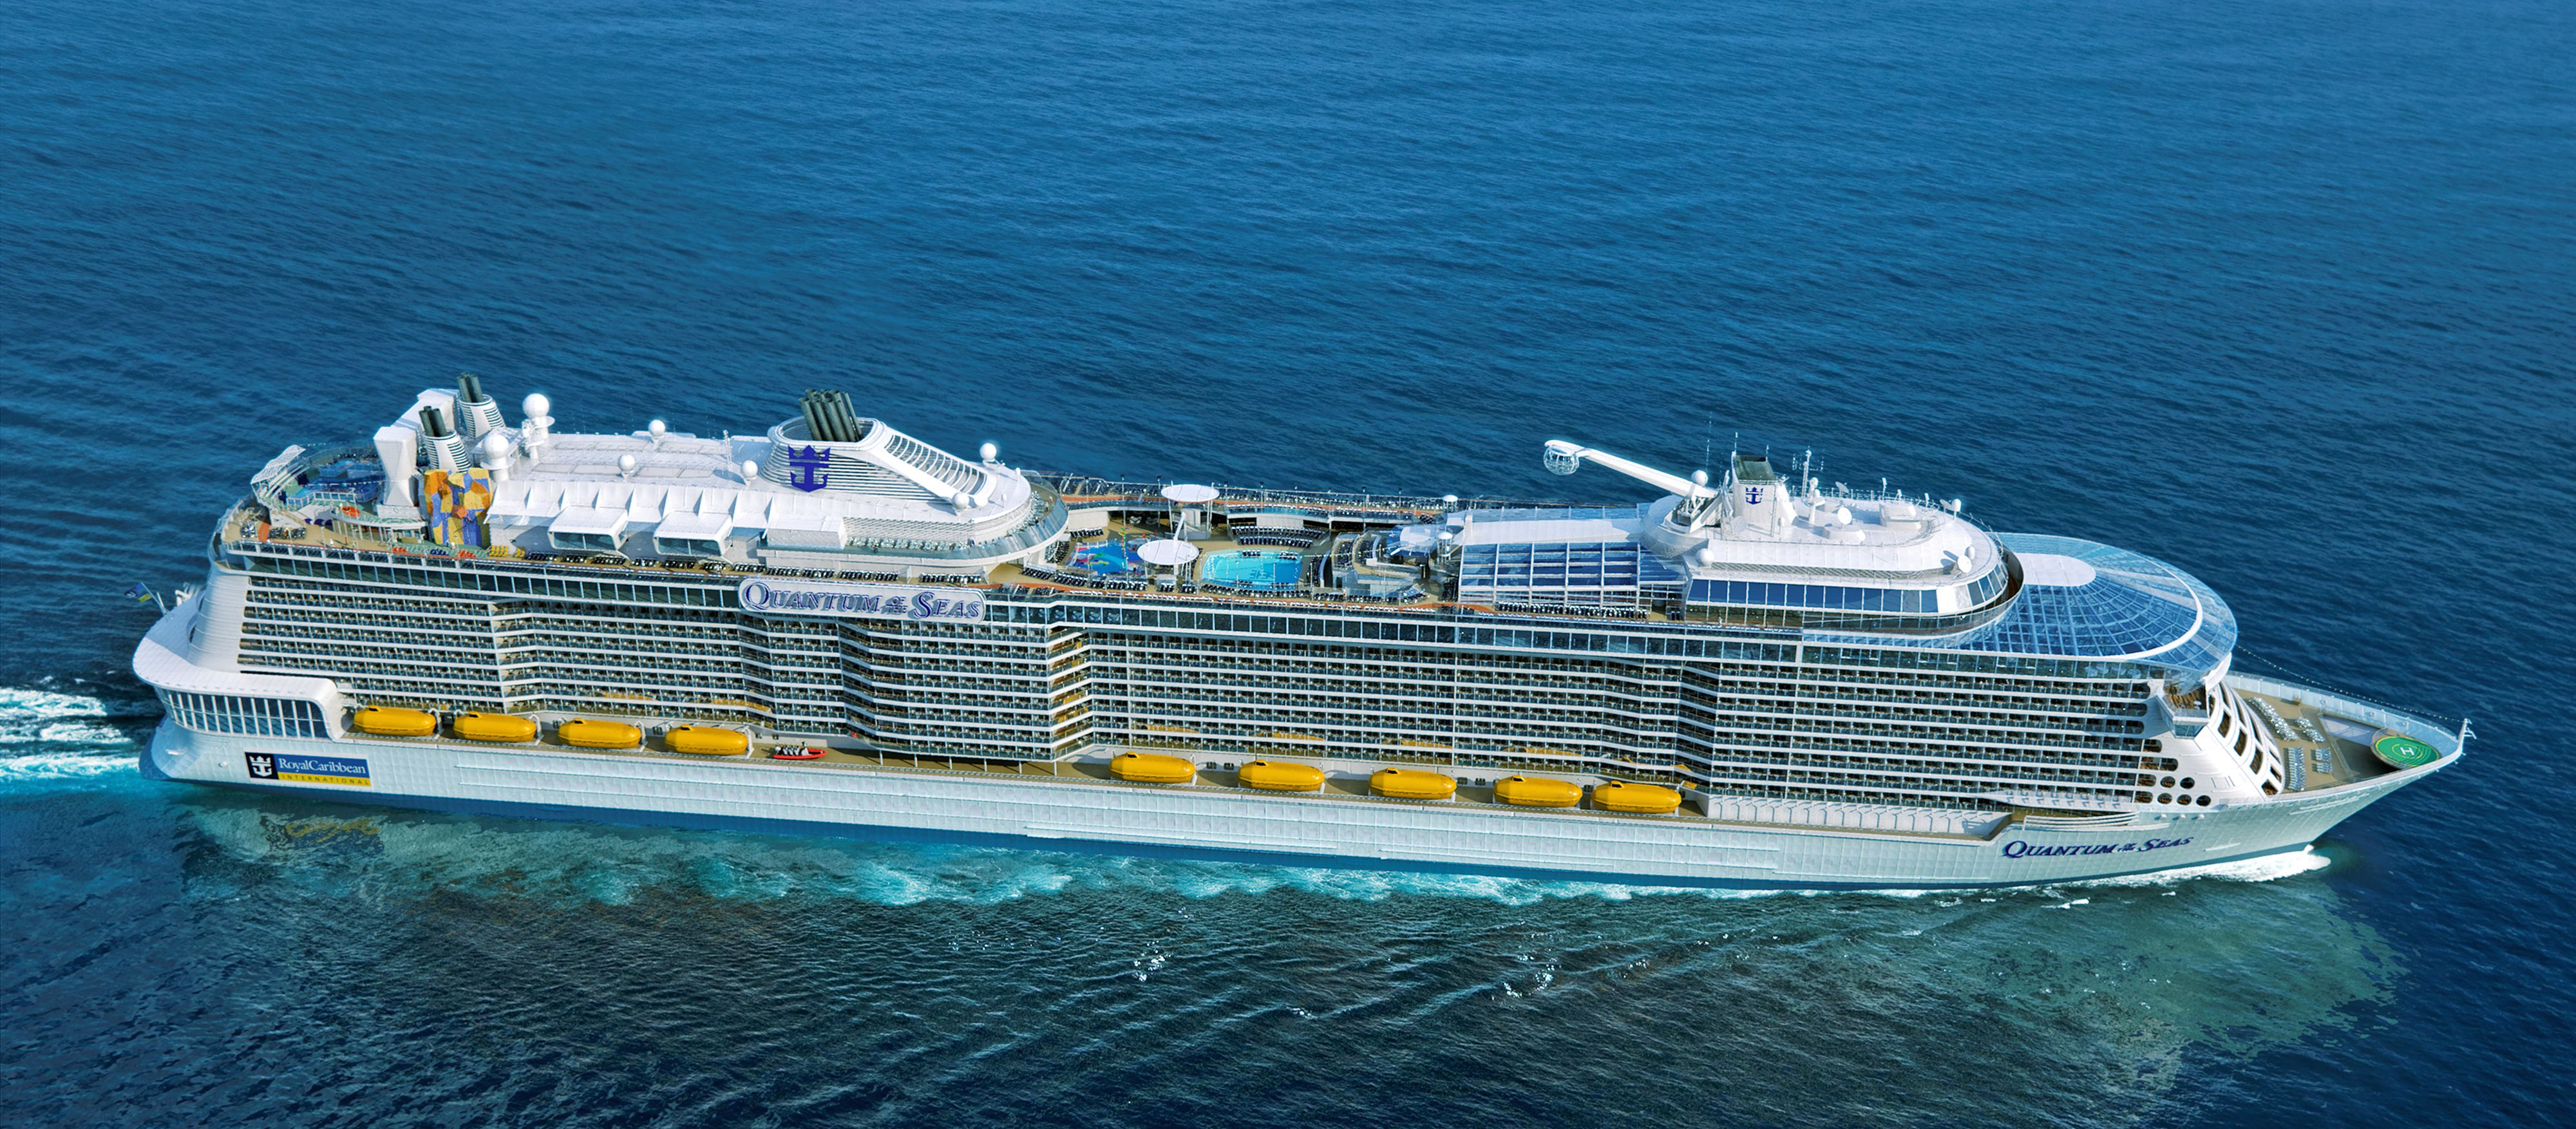 Impression Quantum of the Seas